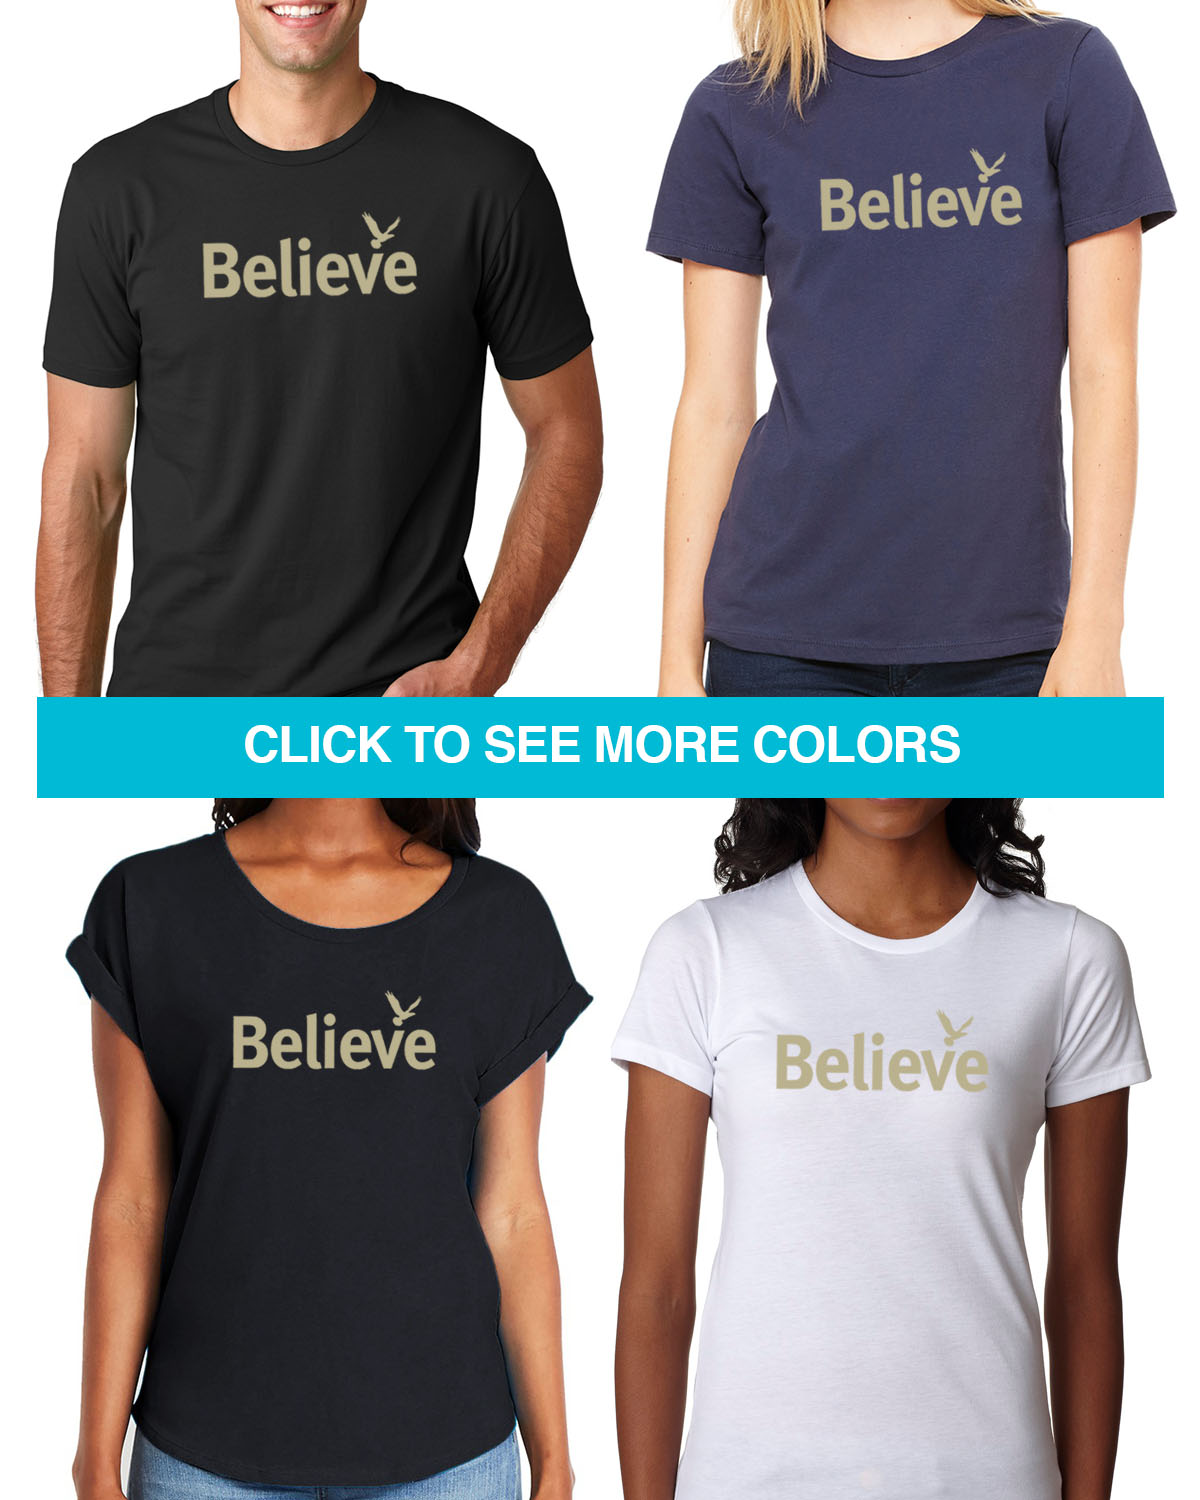 Believe Tees for Men & Women